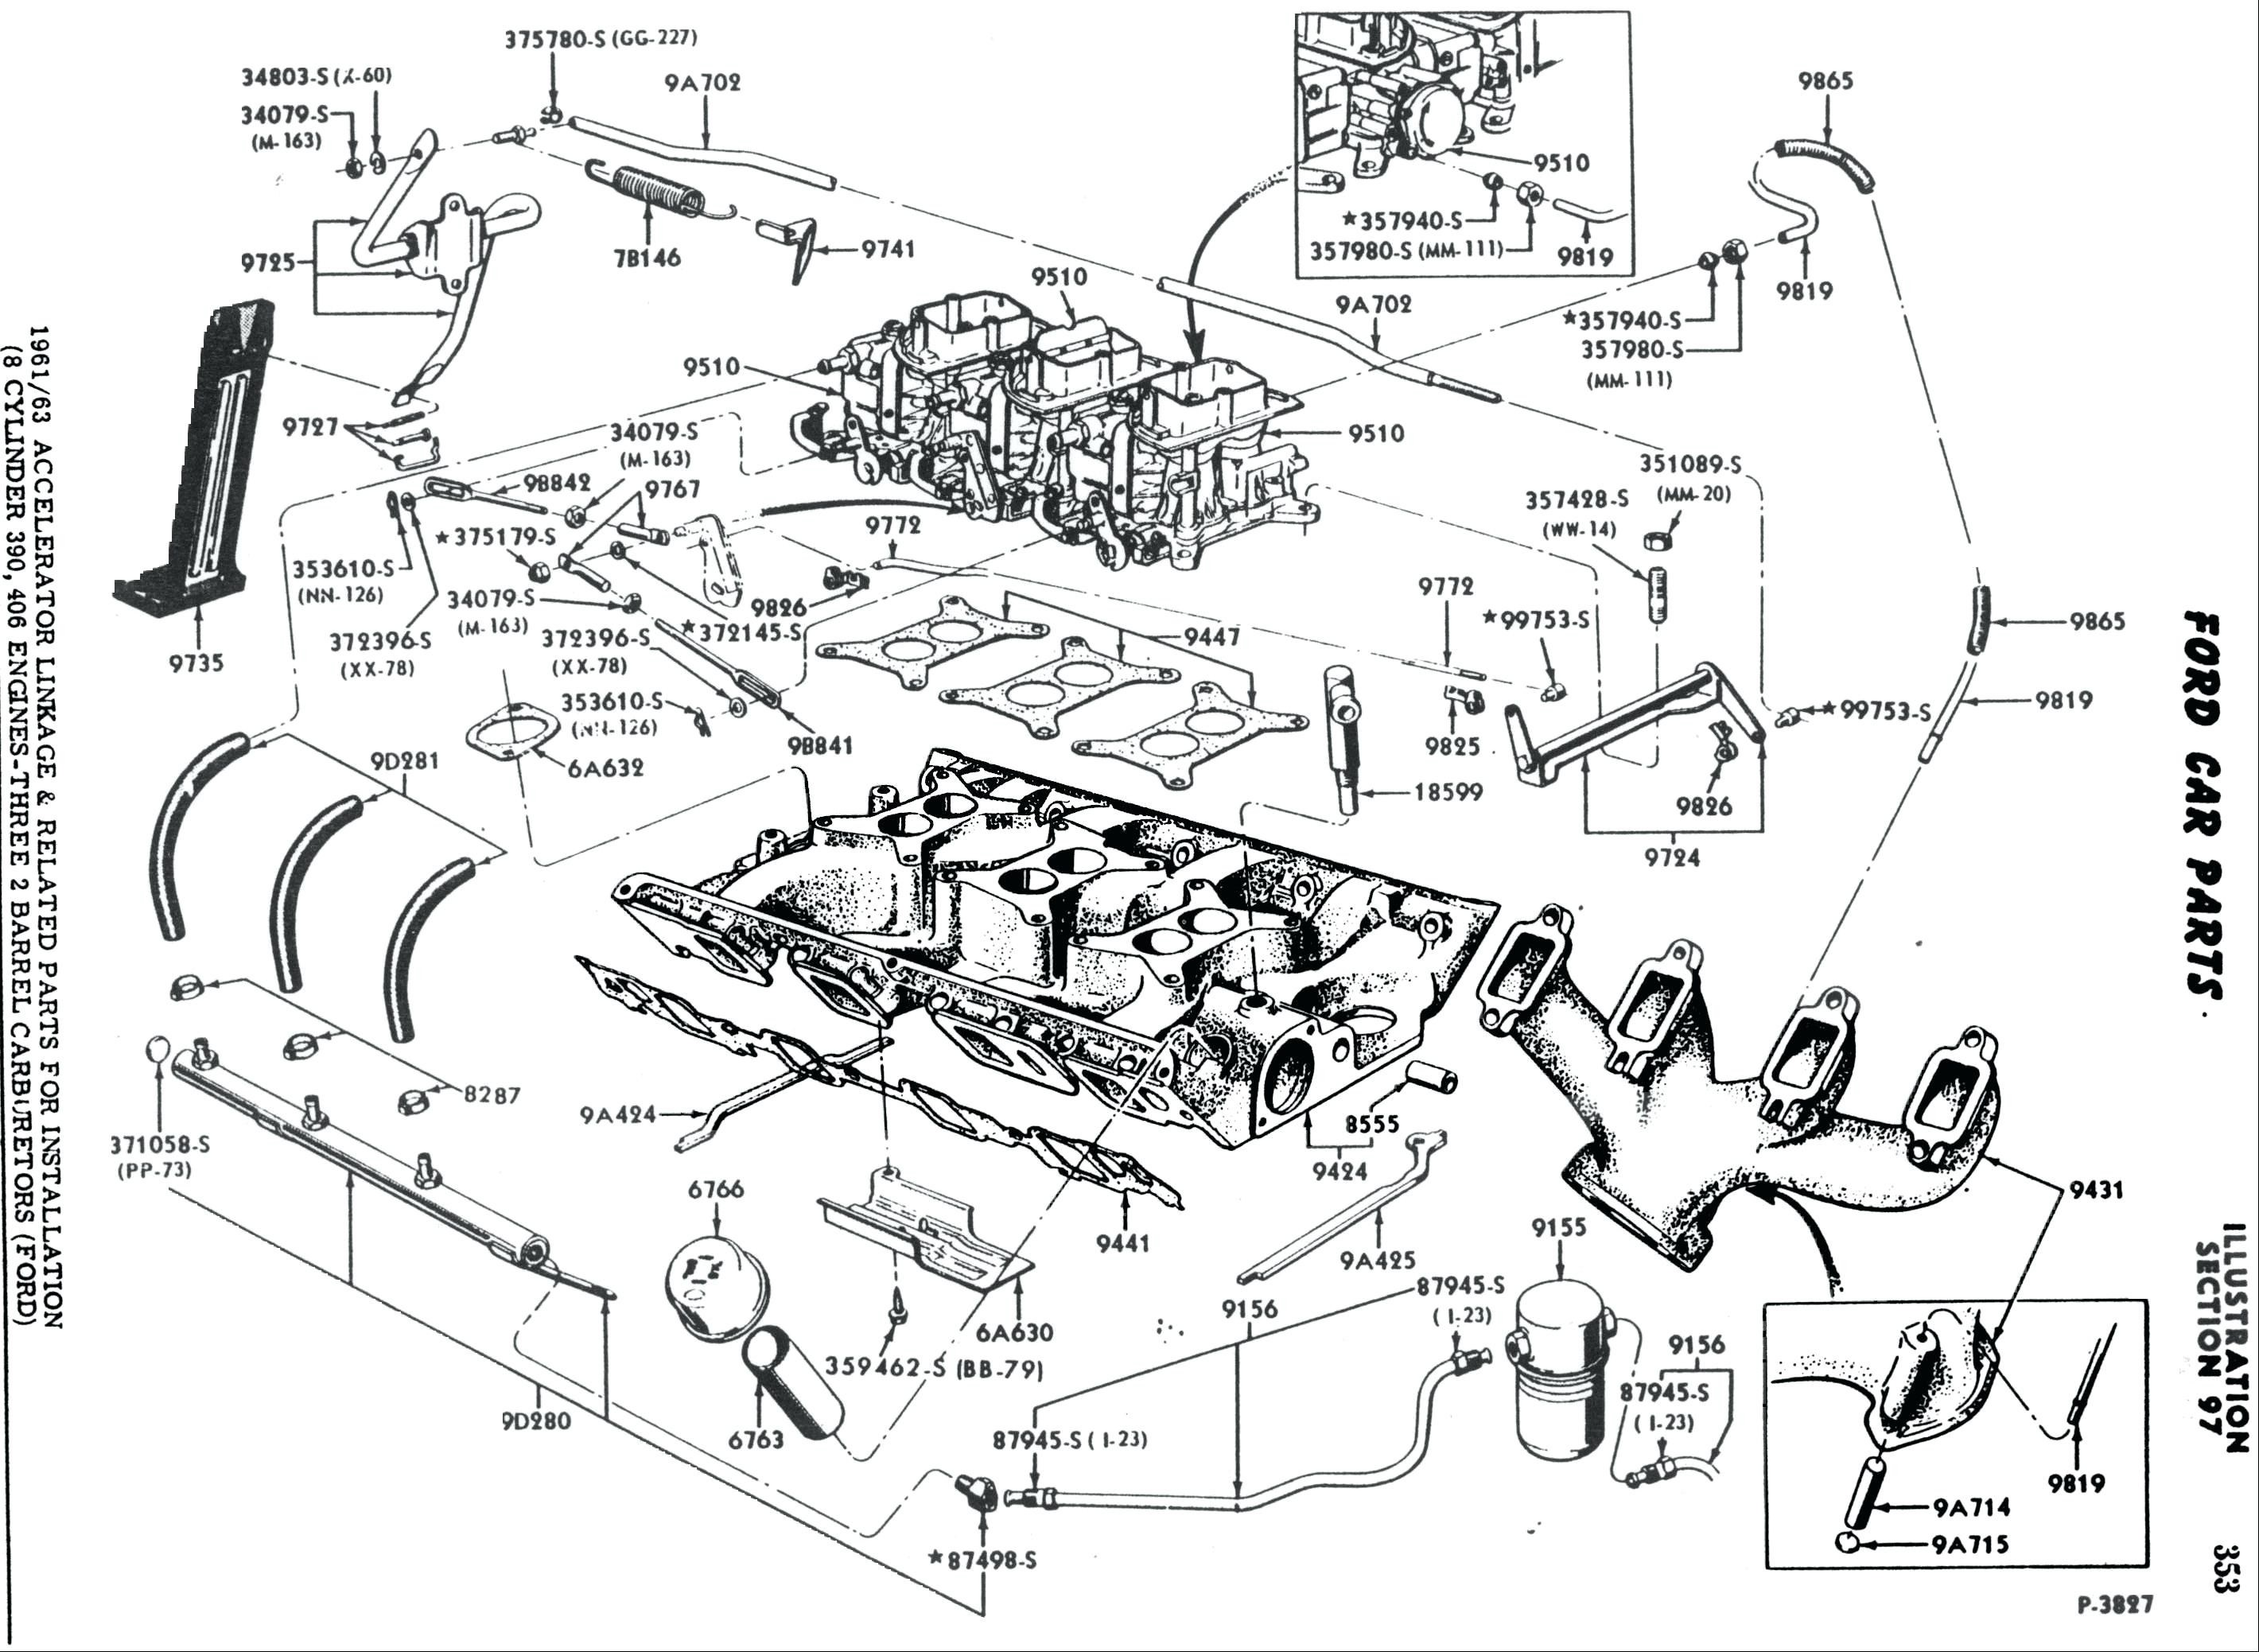 Basic Car Parts Diagram Wrg 7679] Car Engine Schematics Of Basic Car Parts Diagram